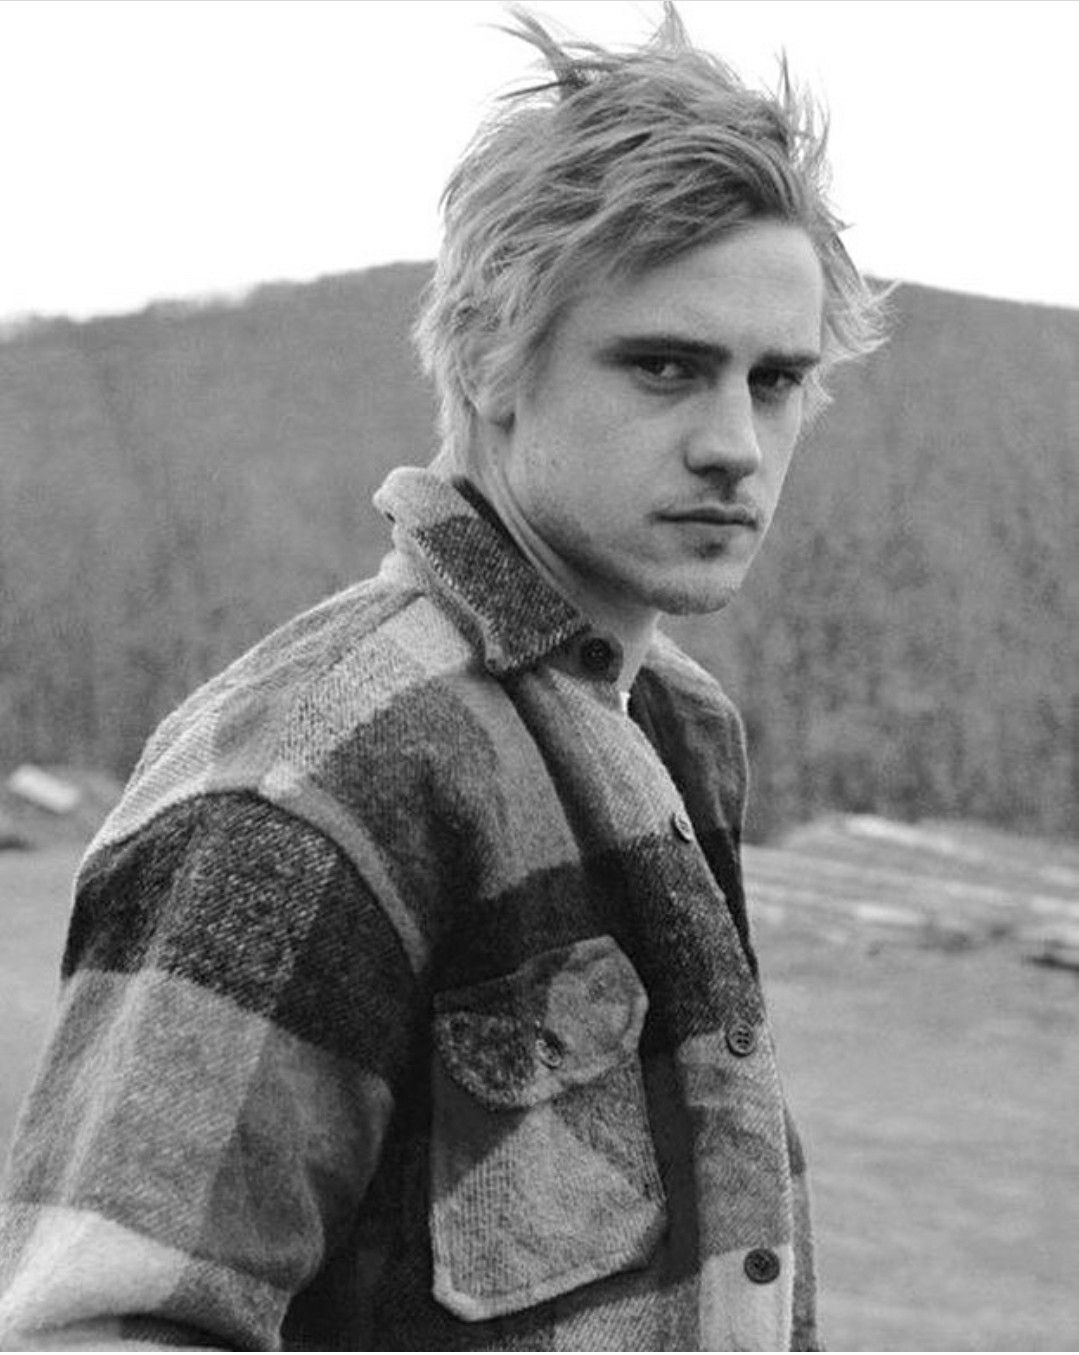 Pin by chubango Just on H Boyd holbrook, Character